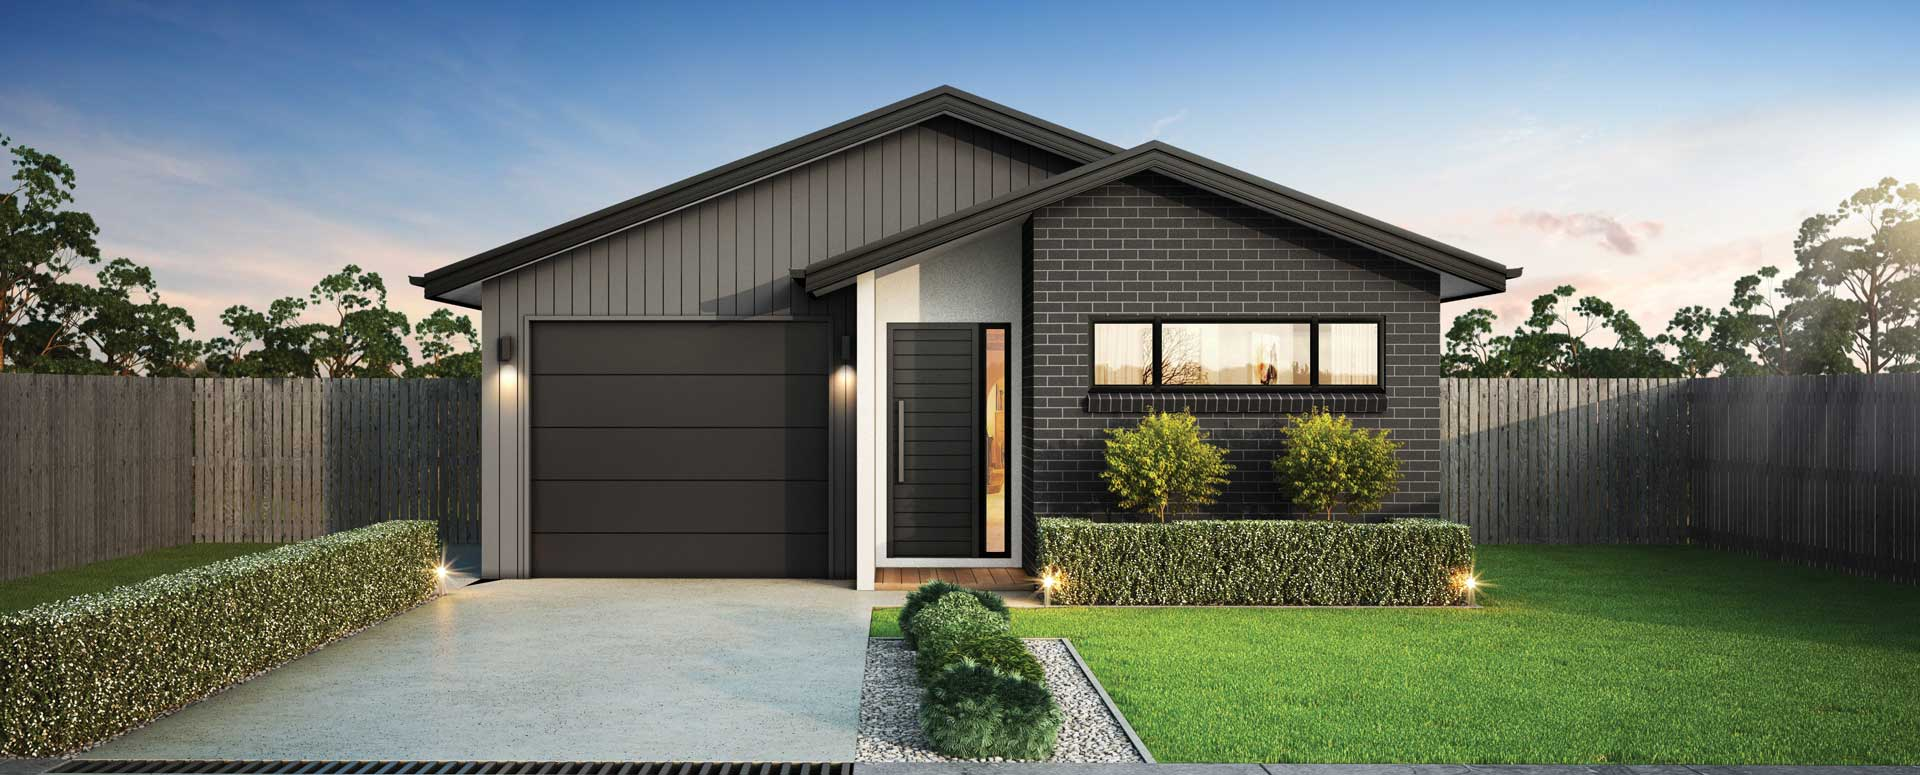 Ceretto Penny Homes Banner Image